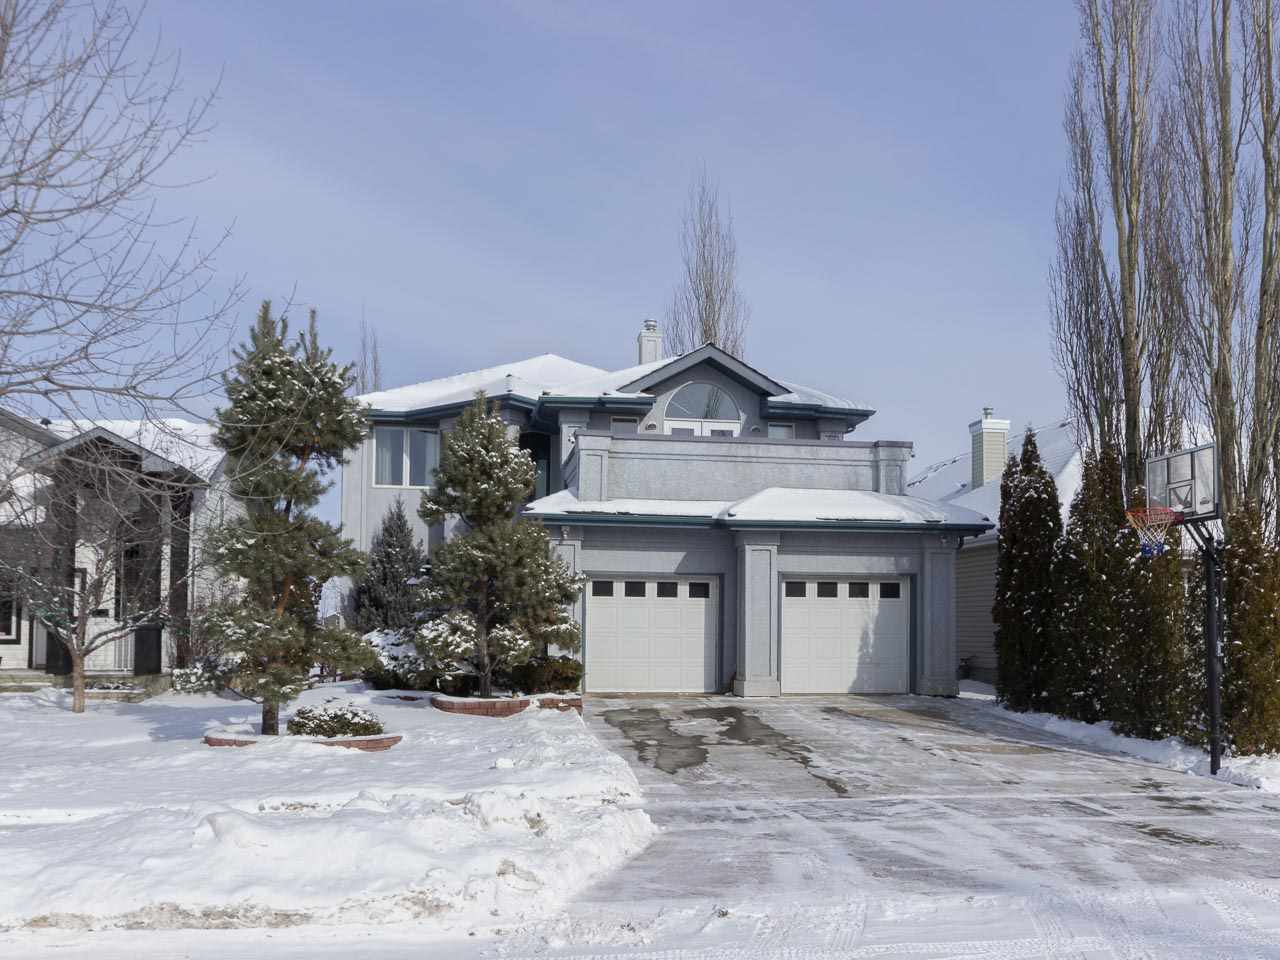 Main Photo: 110 Coloniale Way: Beaumont House for sale : MLS(r) # E4054223